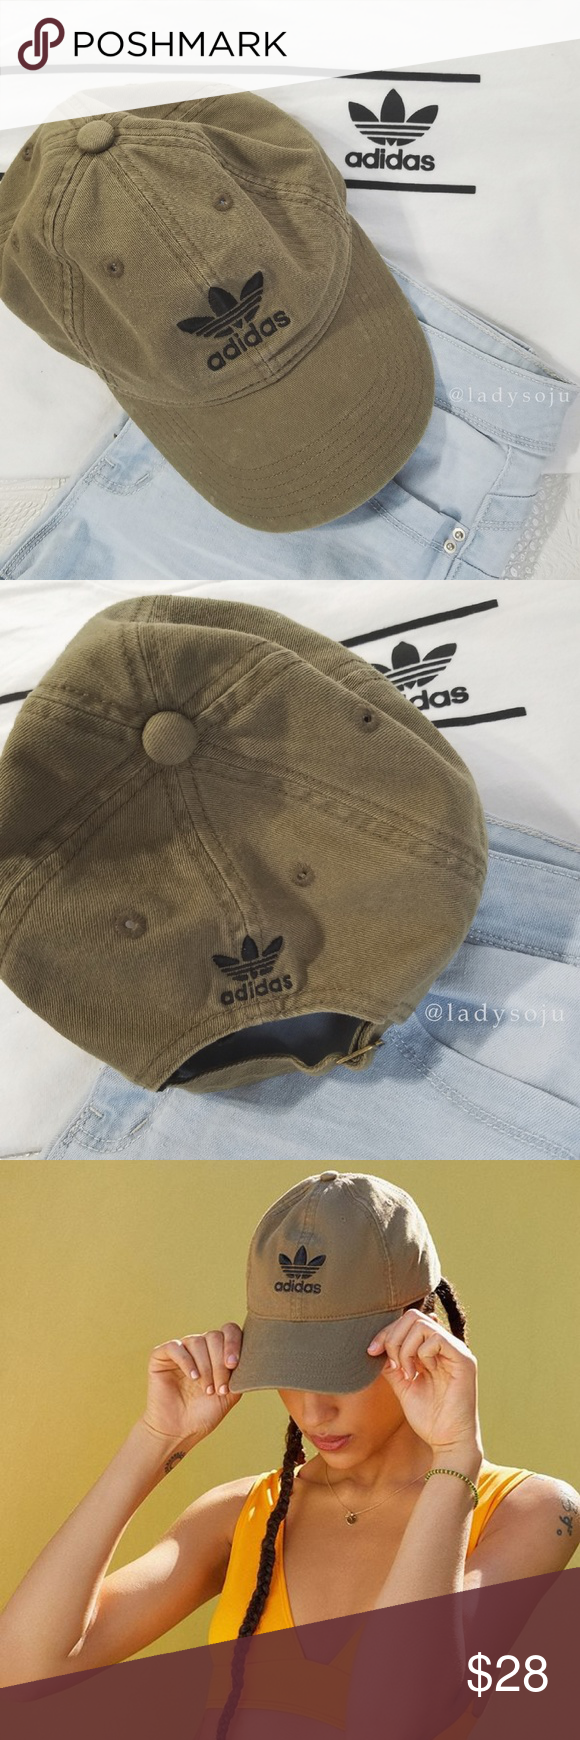 8149f7c180e Adidas Trefoil Olive Hat    Adidas Originals Relaxed Womens Dad Hat    Olive  Cap with black trefoil logo    Excellent used condition First two photos  are ...